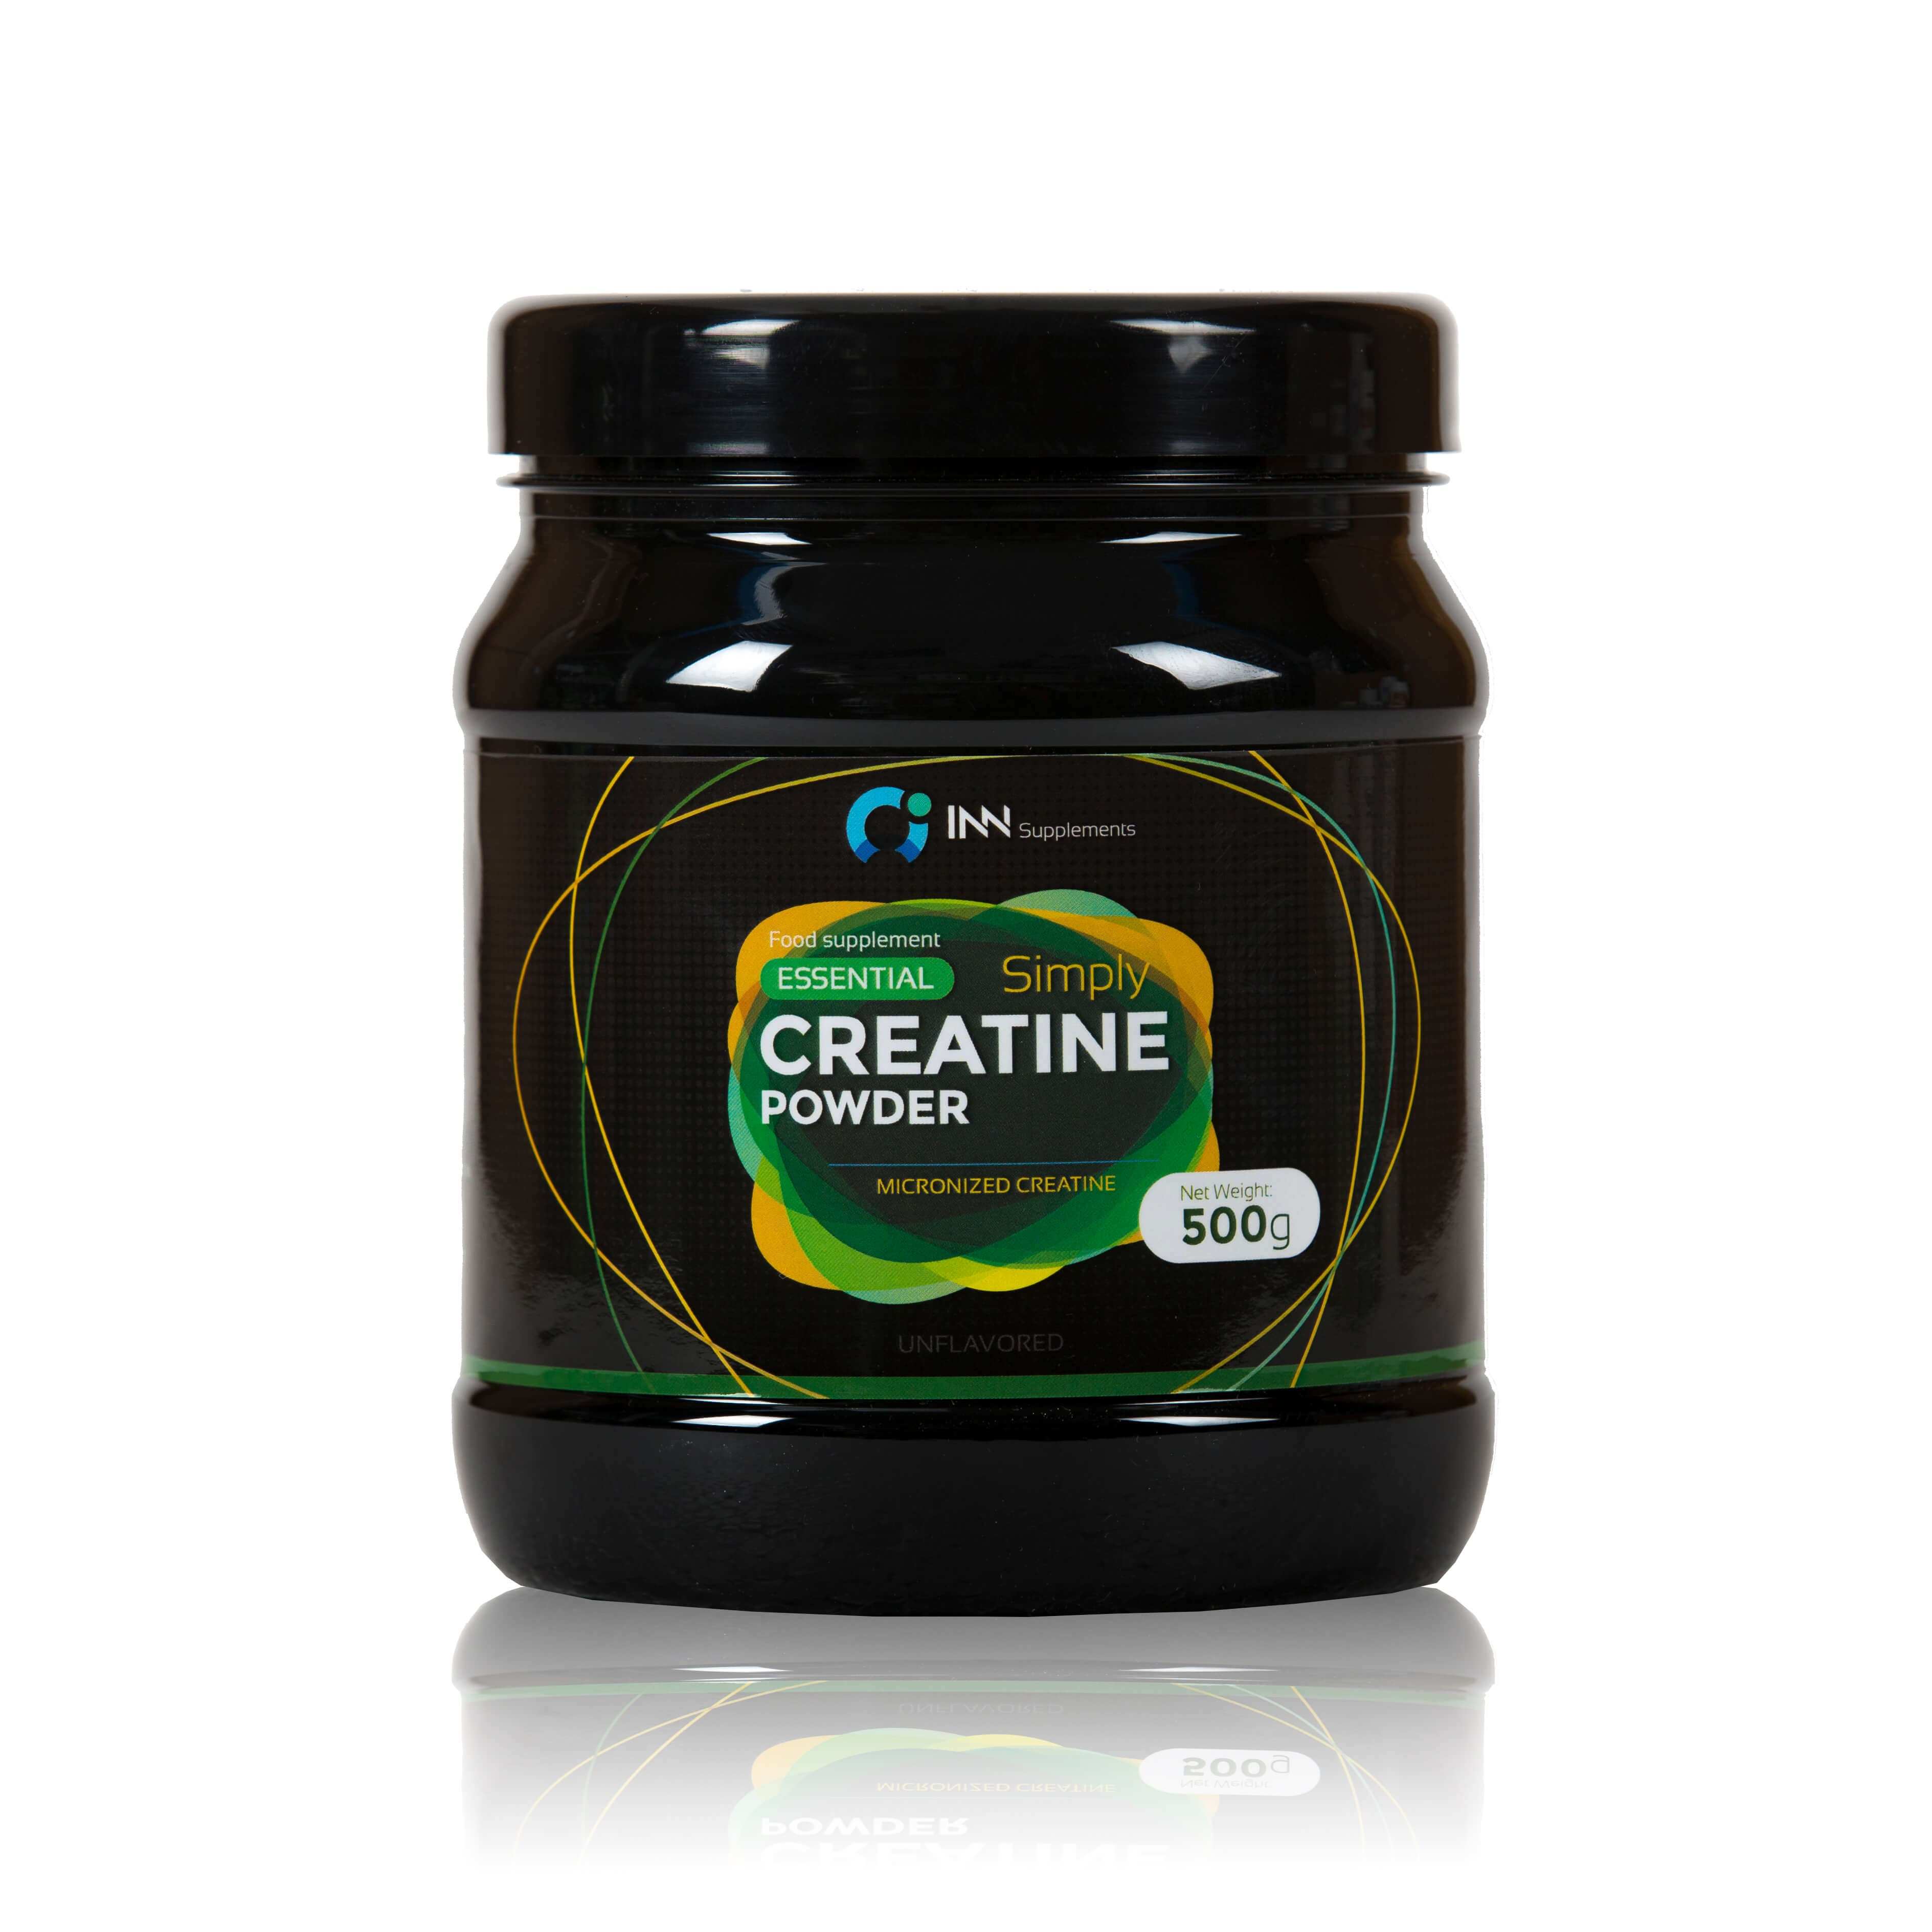 INN Simply Creatine Powder 500g